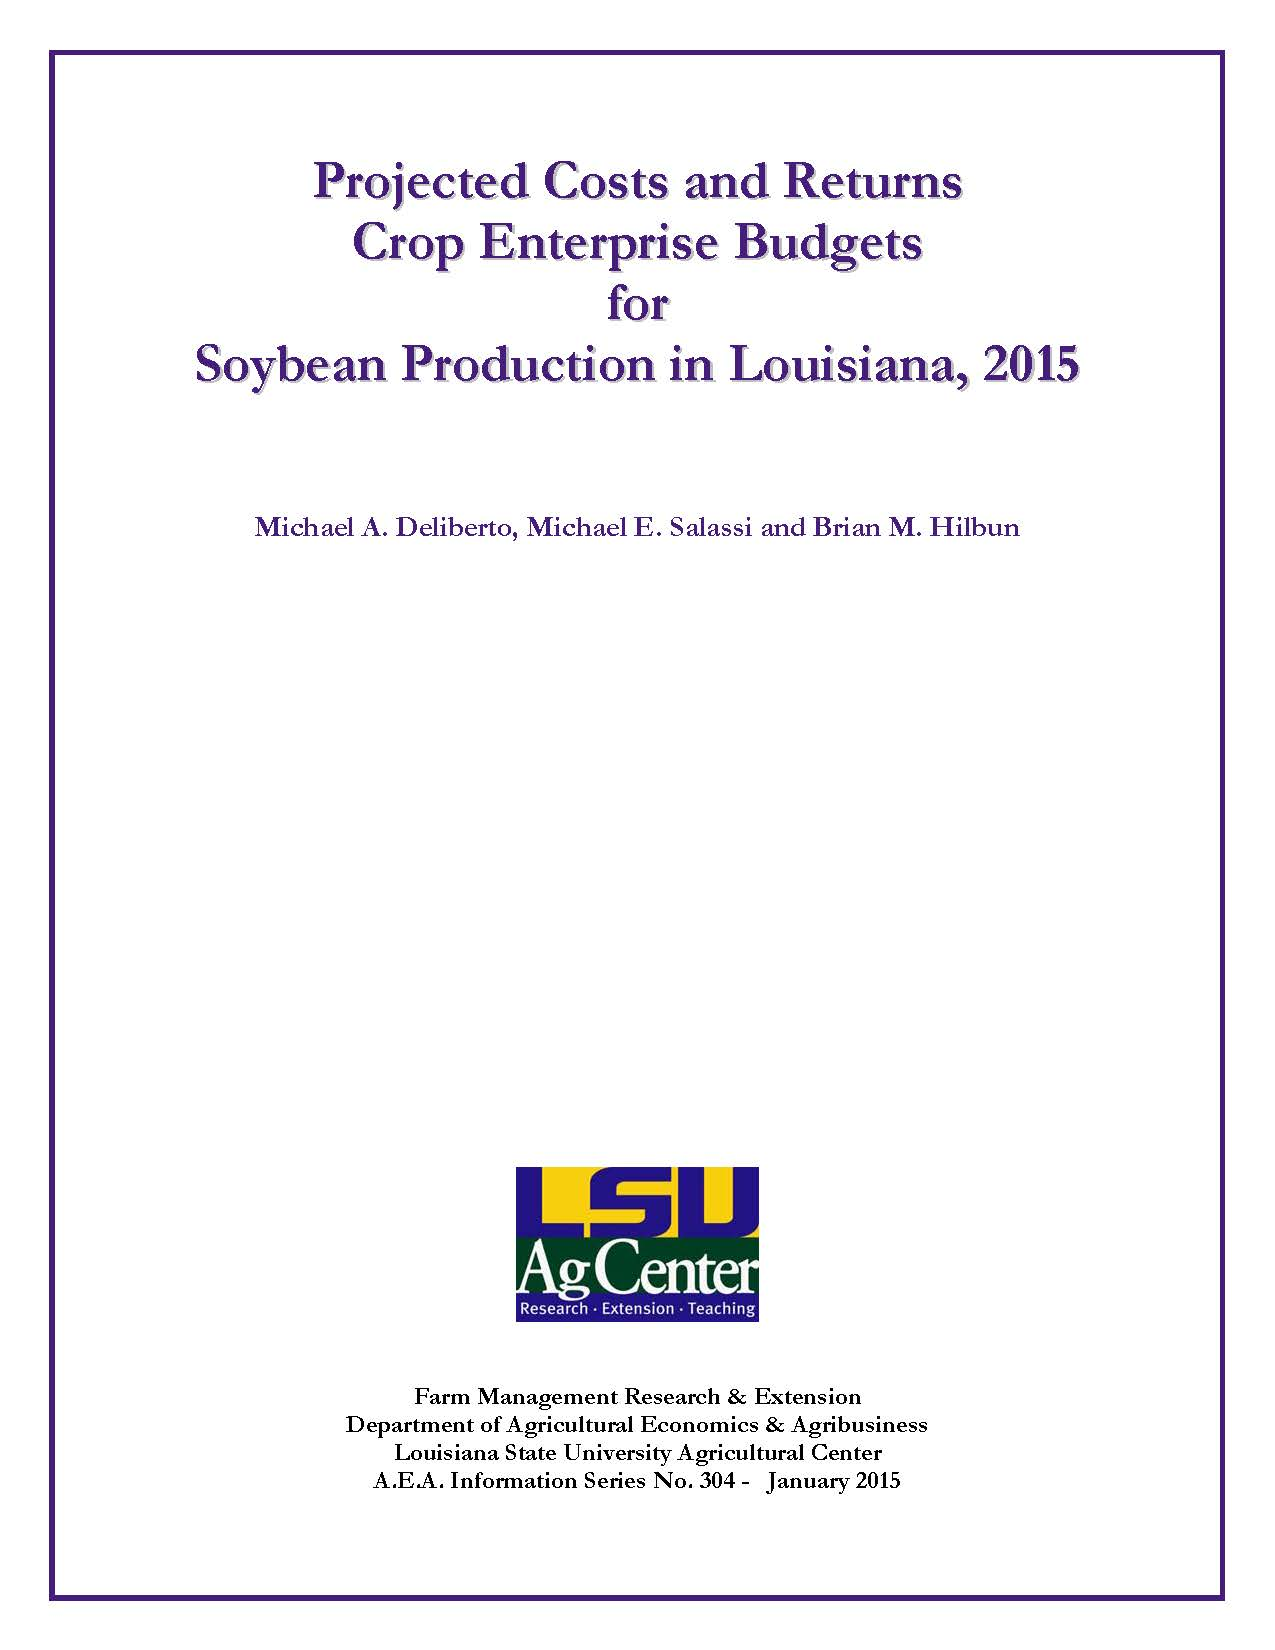 Projected Costs and Returns Crop Enterprise Budgets for Soybean Production in Louisiana 2015